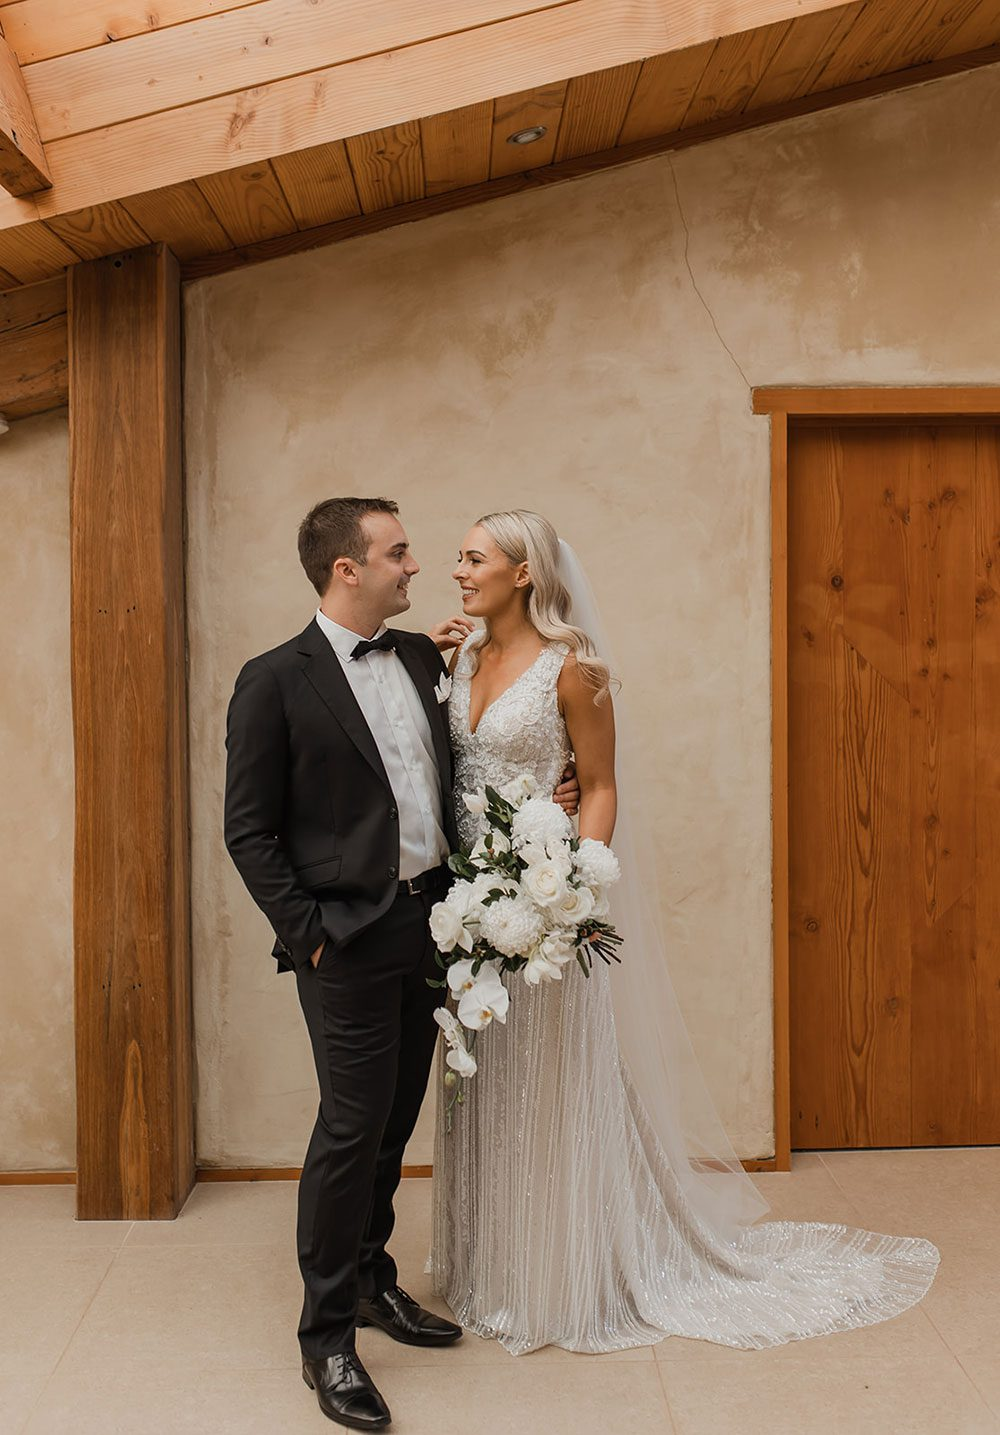 Bride wearing bespoke fitted V-neck gown in beaded lace with front split and sheer beaded overlay by Vinka bridal boutique NZ- with groom in front of wall